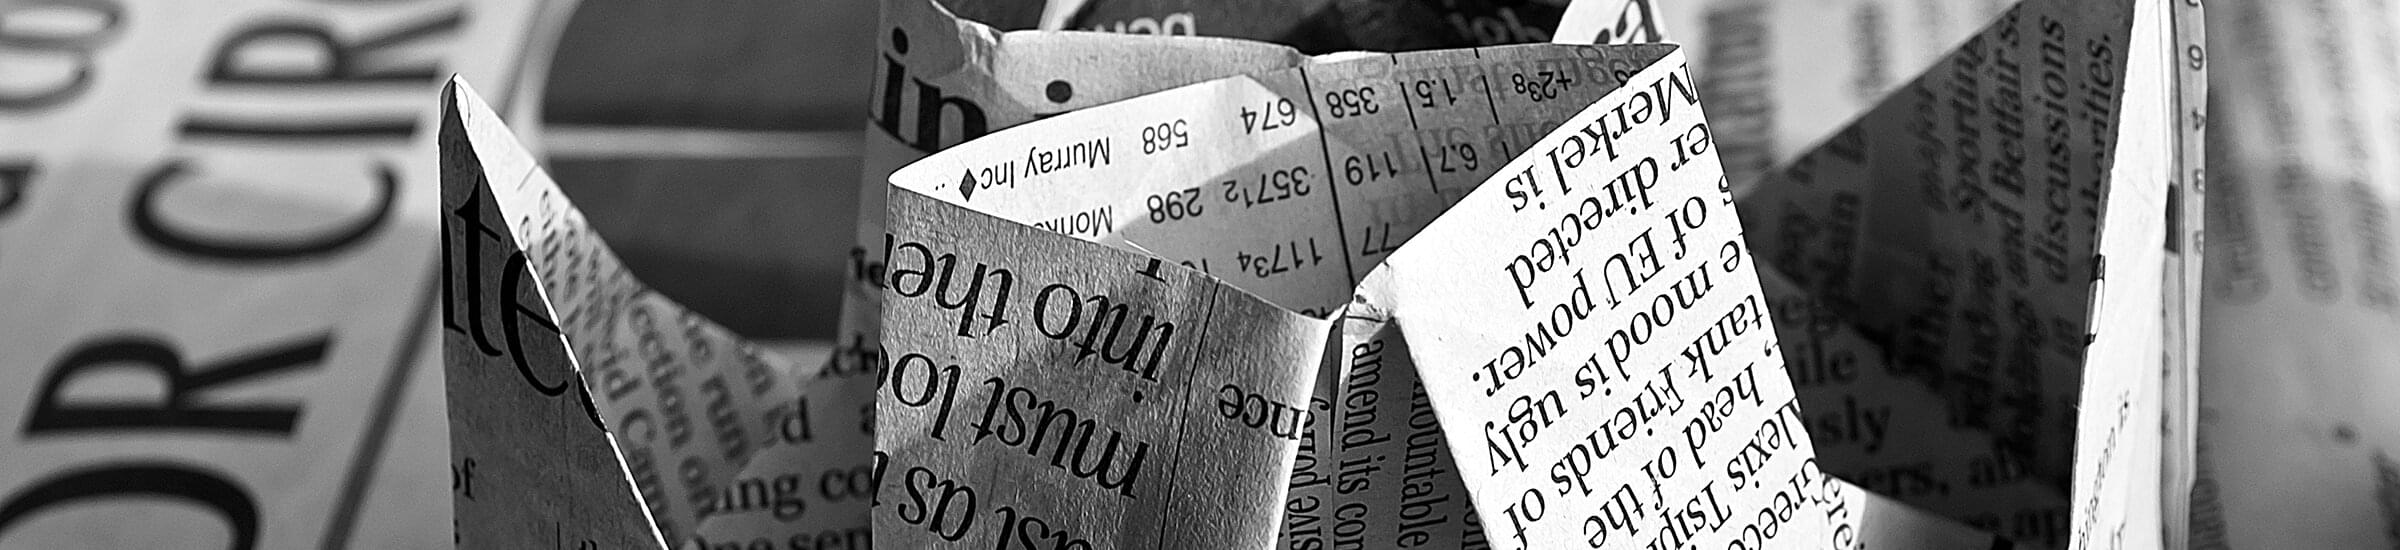 newspaper-origami-40906.jpg | © © Public Domain Pictures